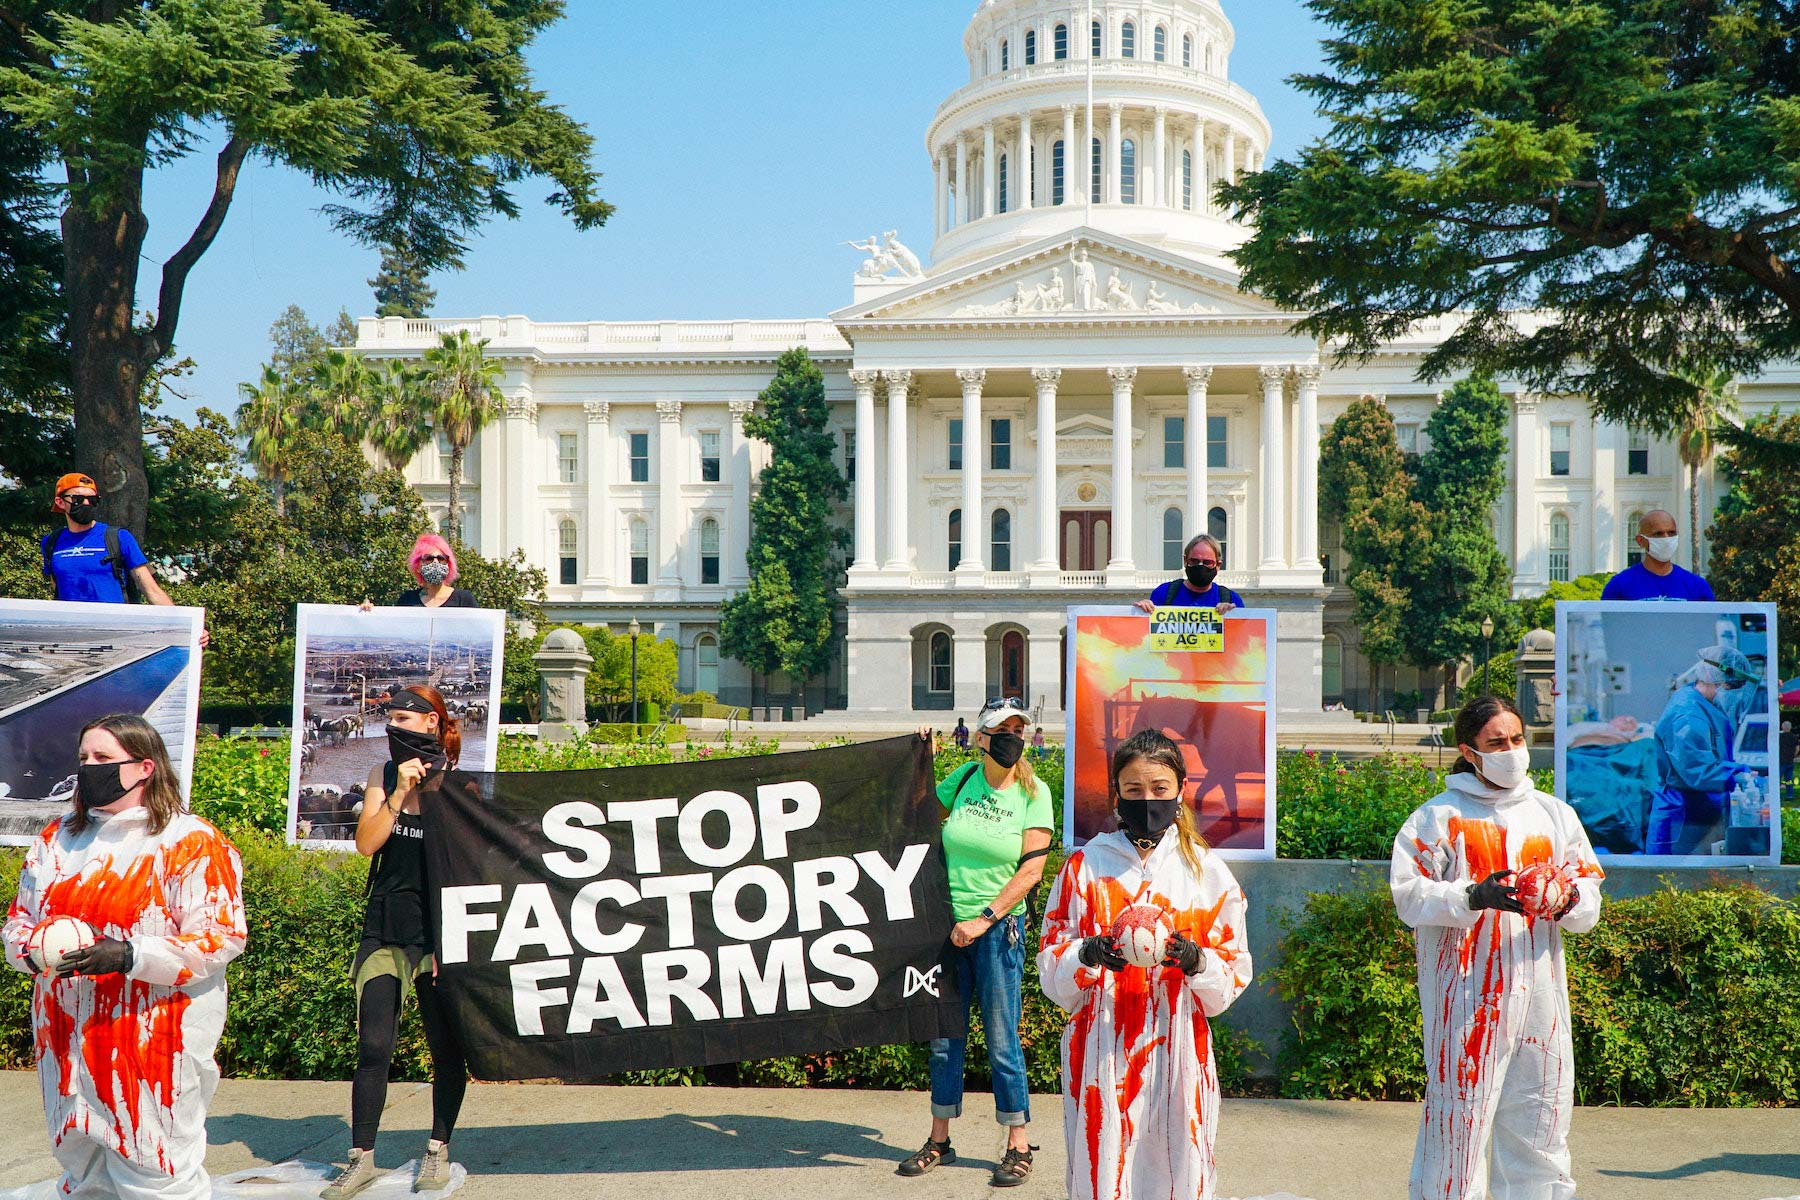 stop factory farms : animal rights demonstration